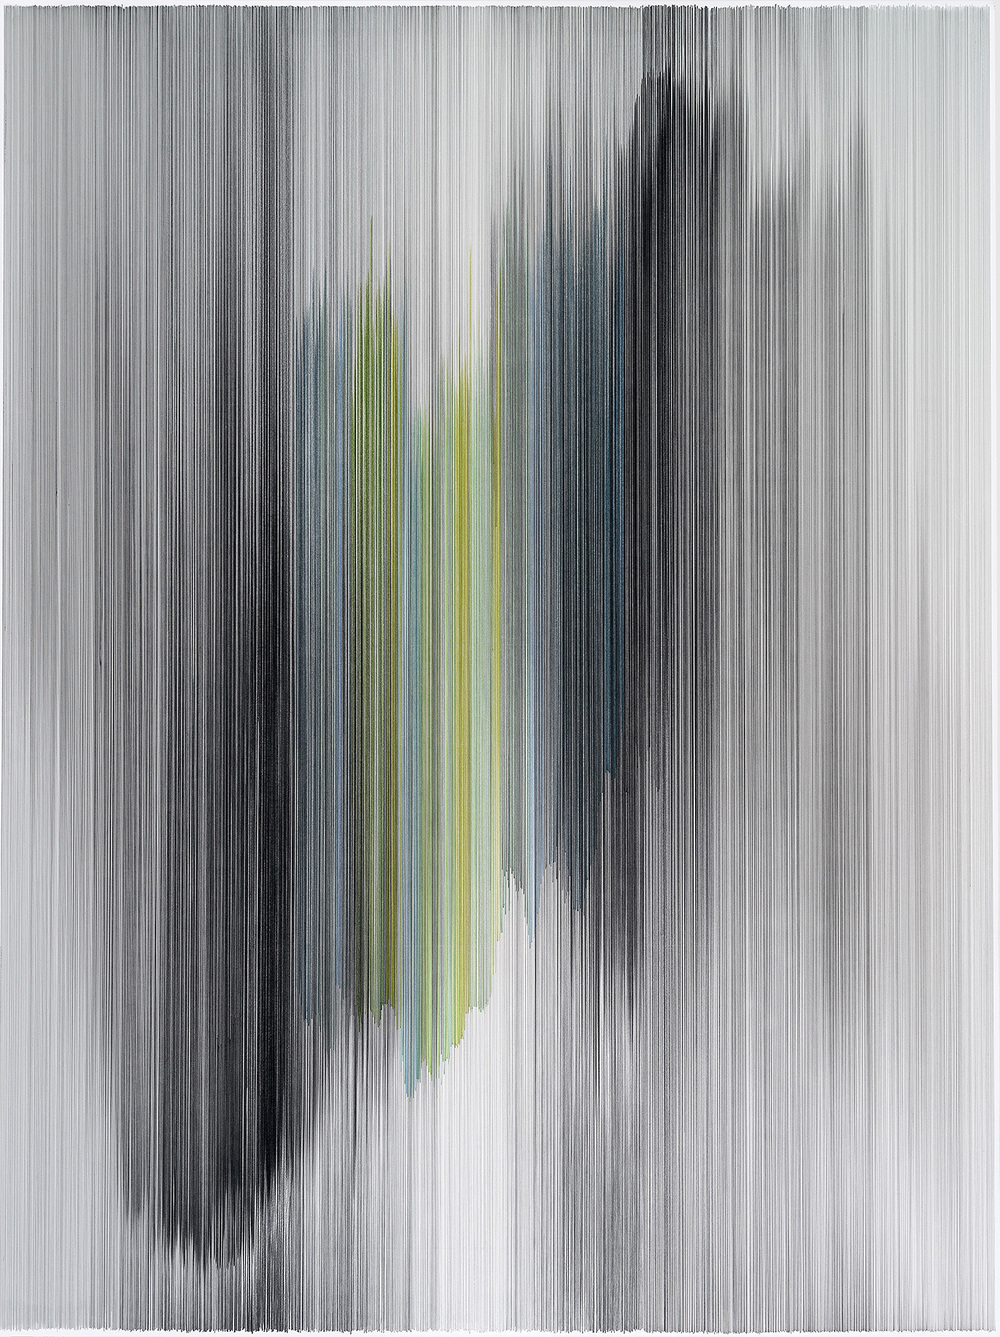 parallel 44  2014 graphite & colored pencil on mat board 60 by 80 inches